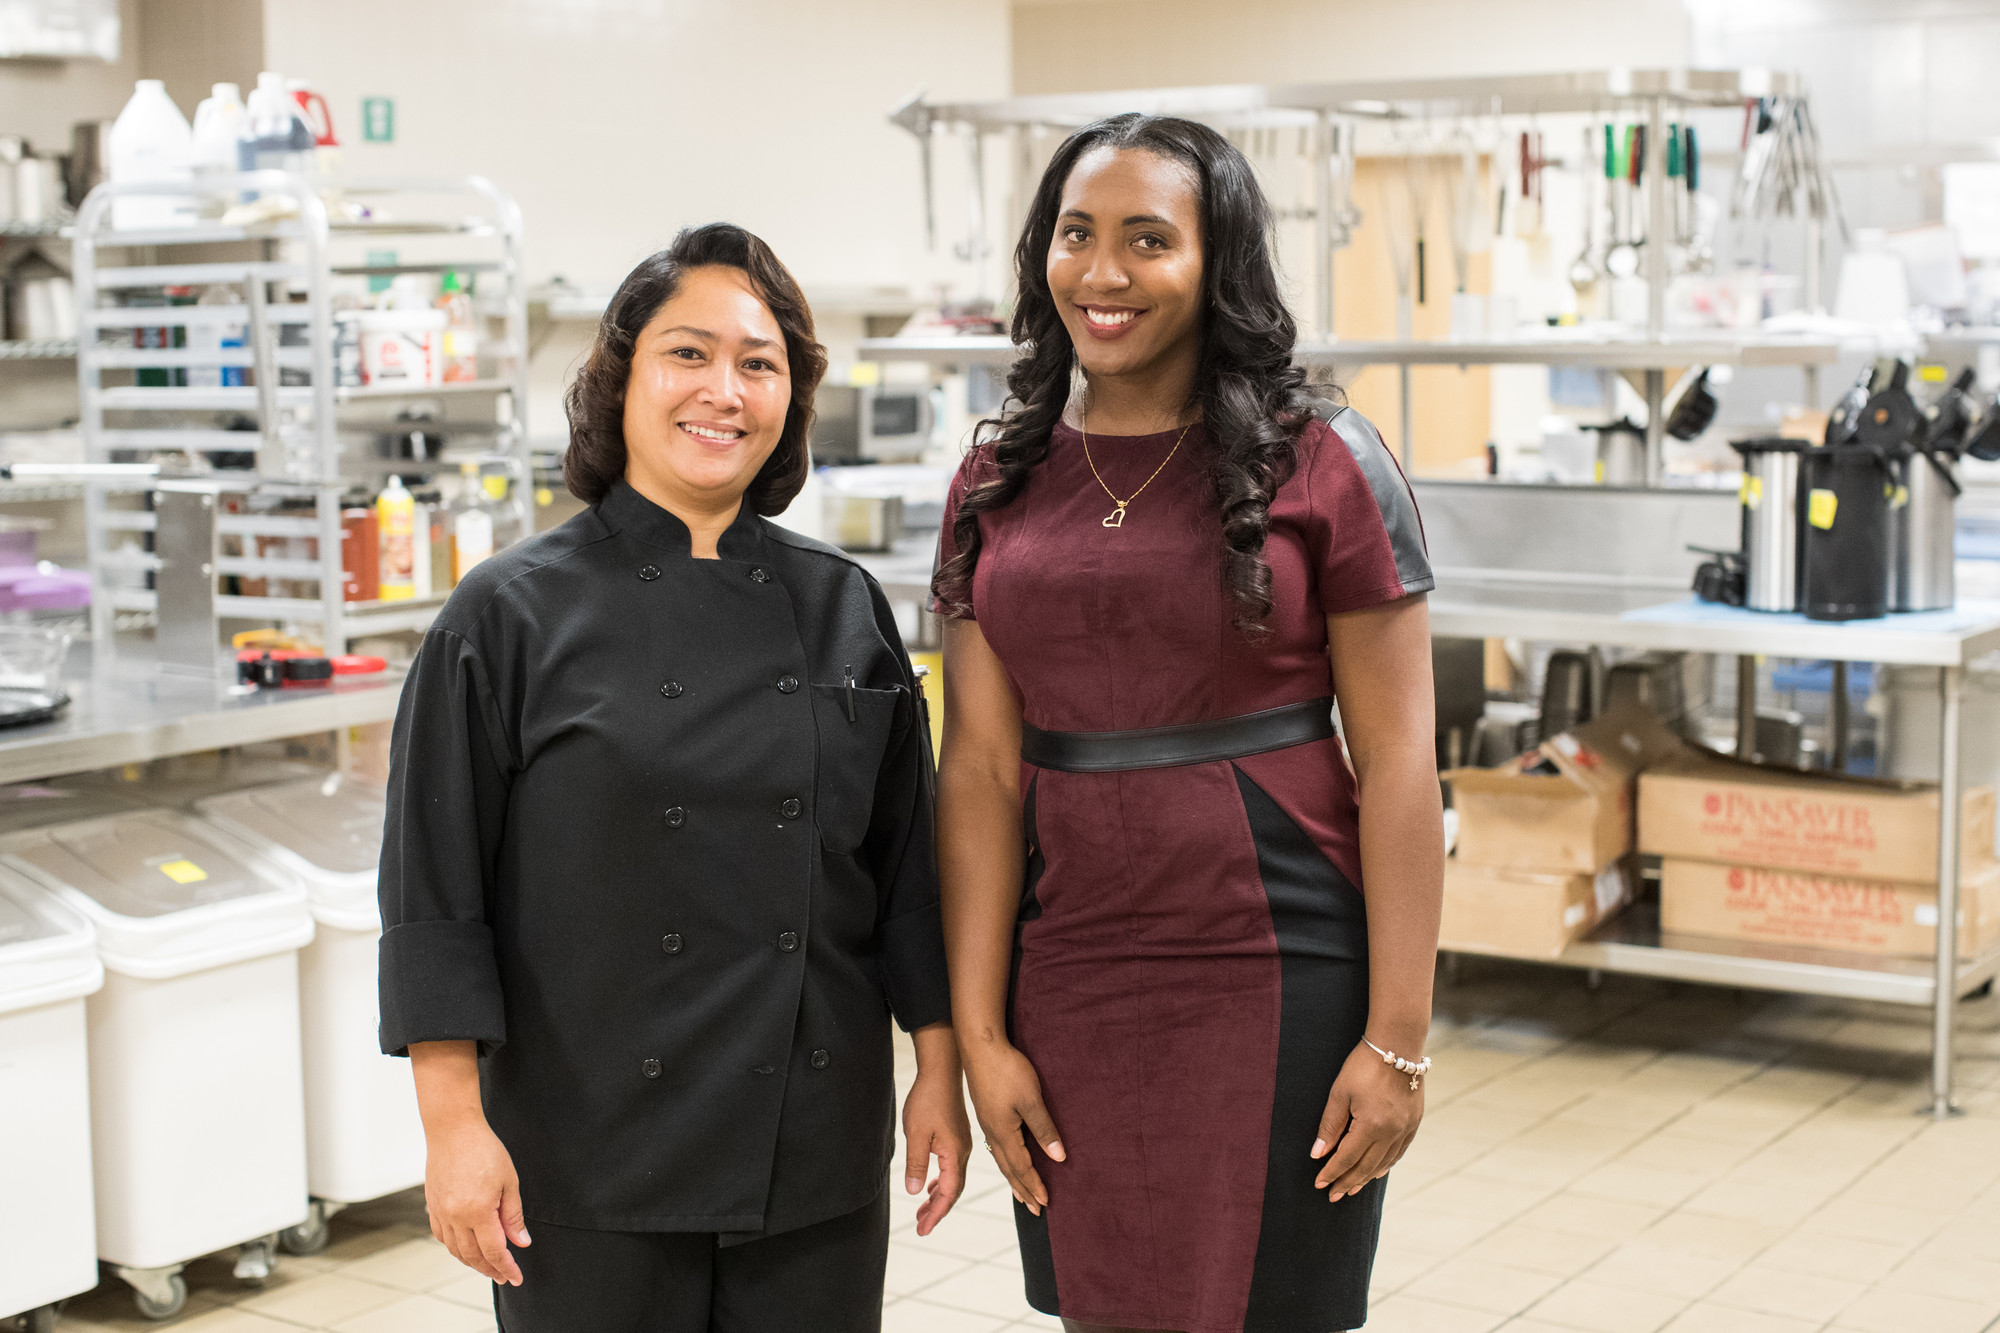 2 women (one wearing a black chef's jacket) in an industrial kitchen